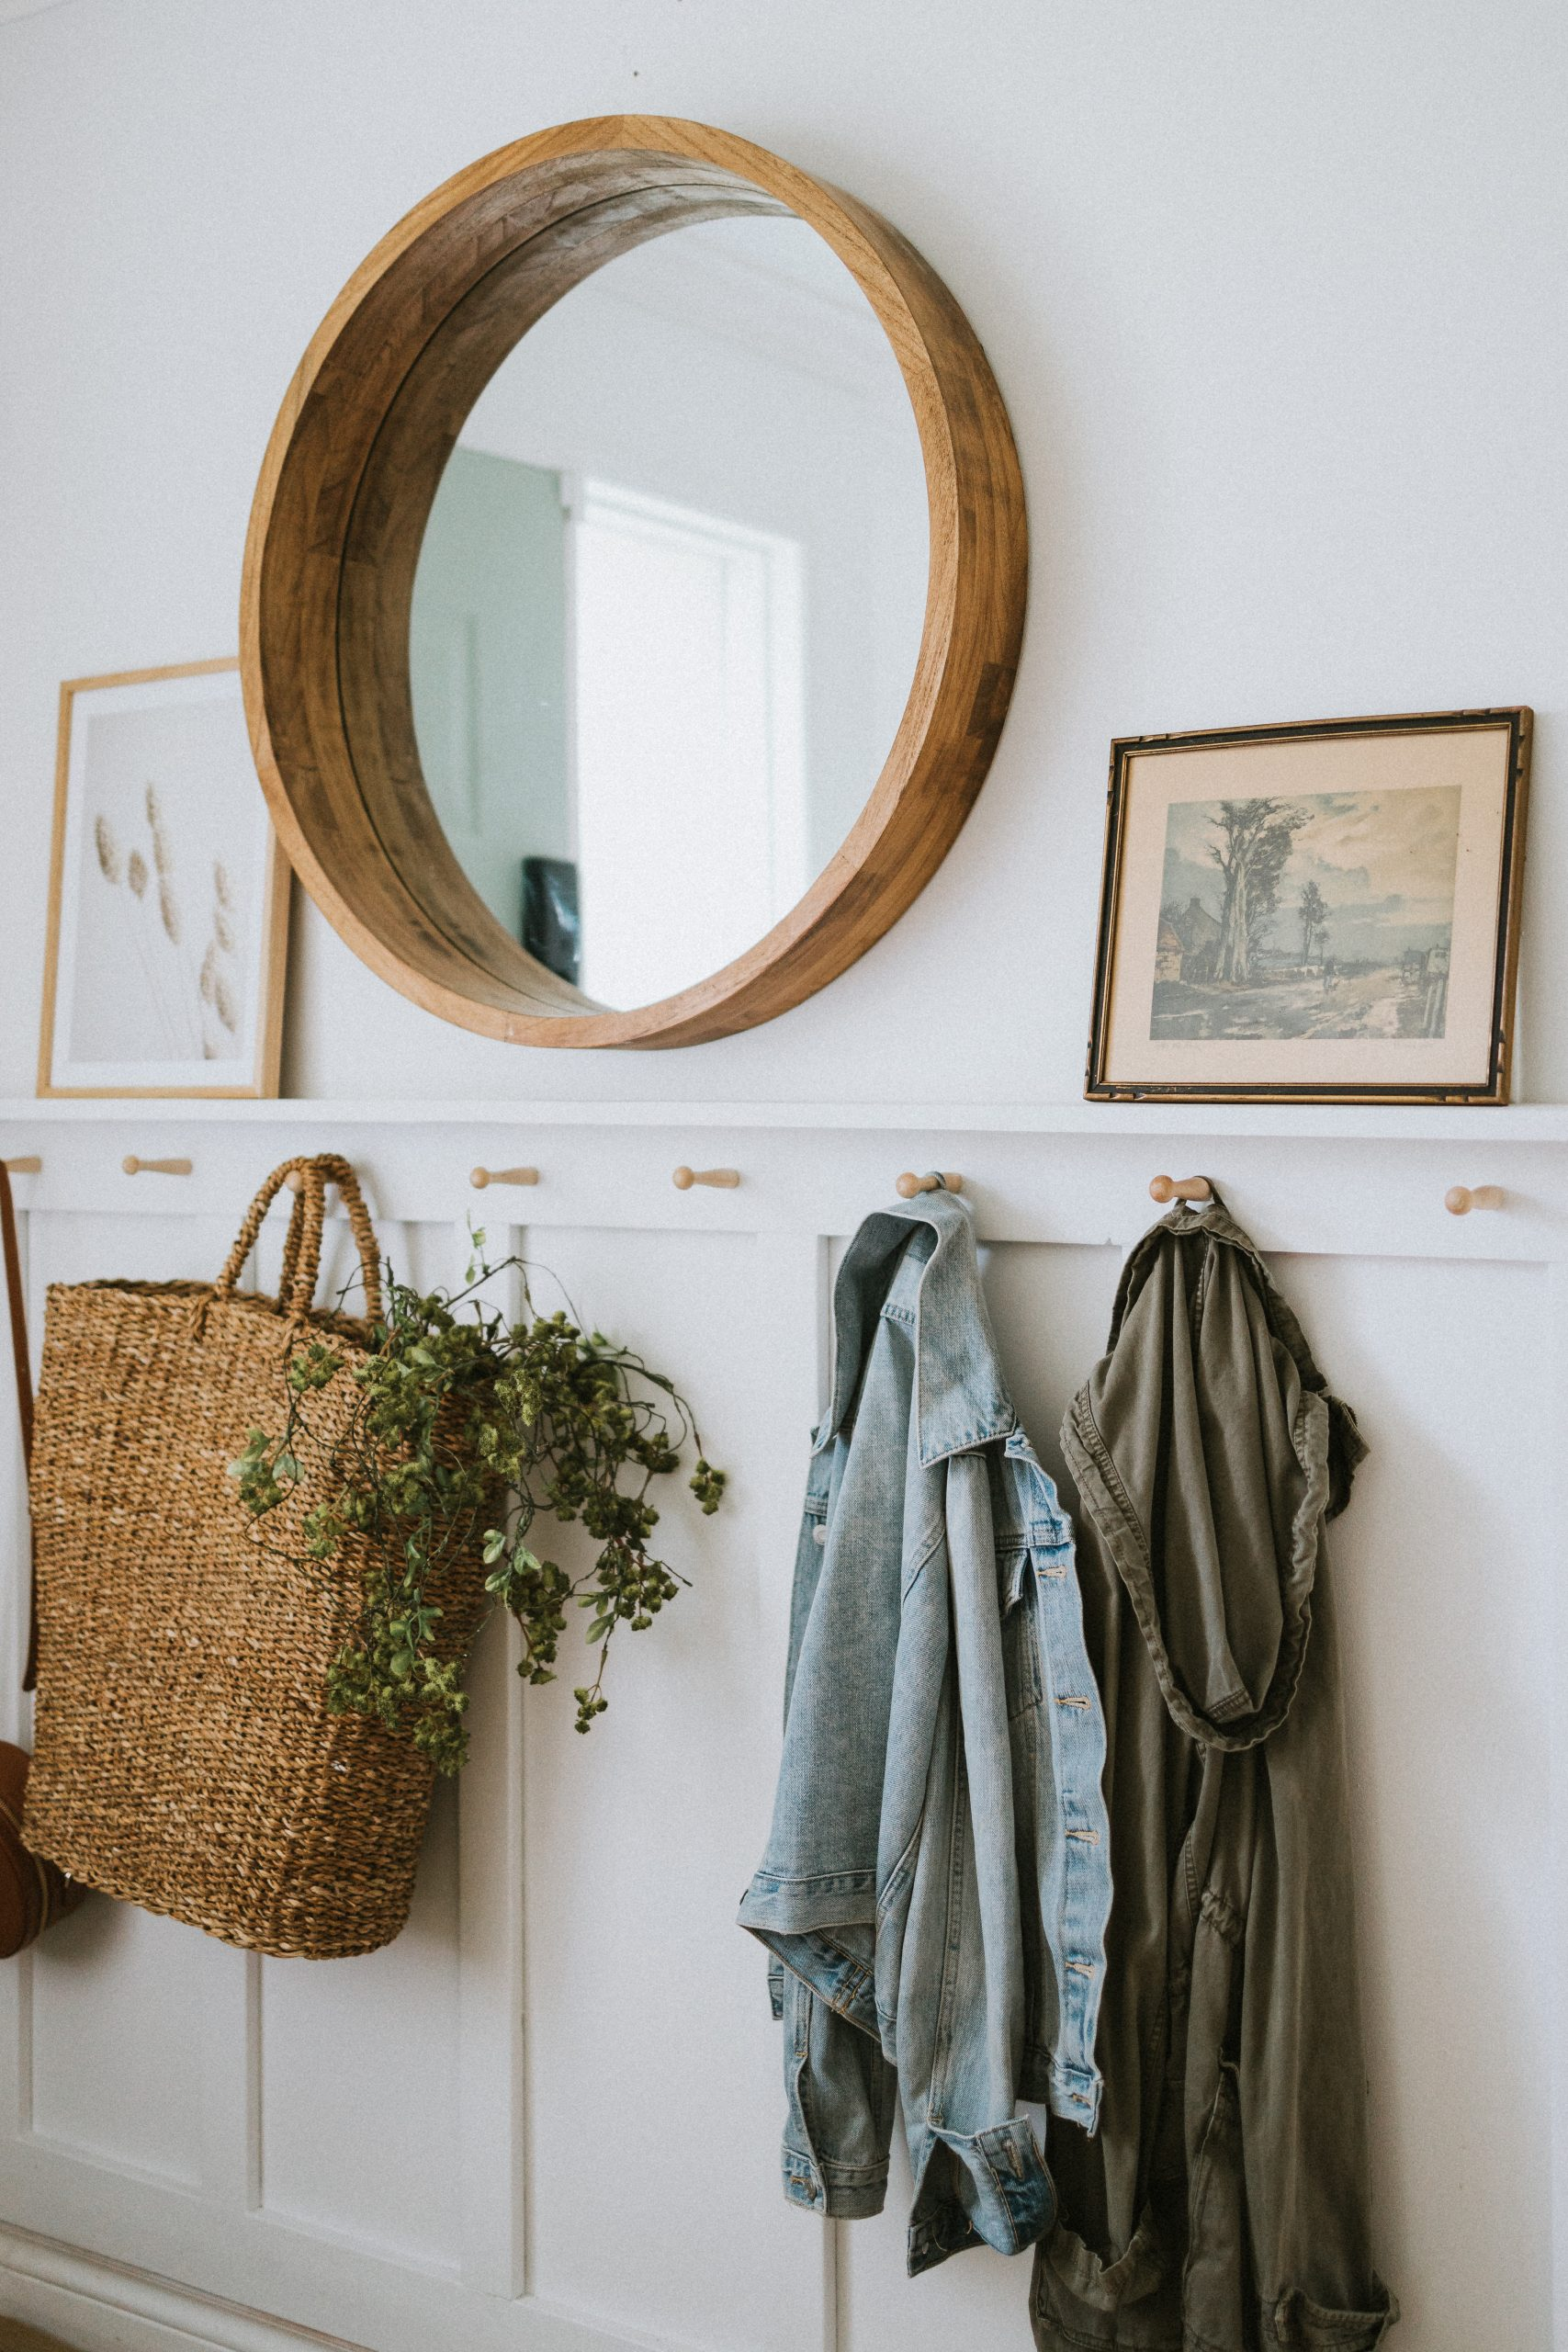 10 Items To Find Thrifting. You would be surprised what you can find in a thrift store. Skip spending hundreds at Pottery Barn and start thrifting!